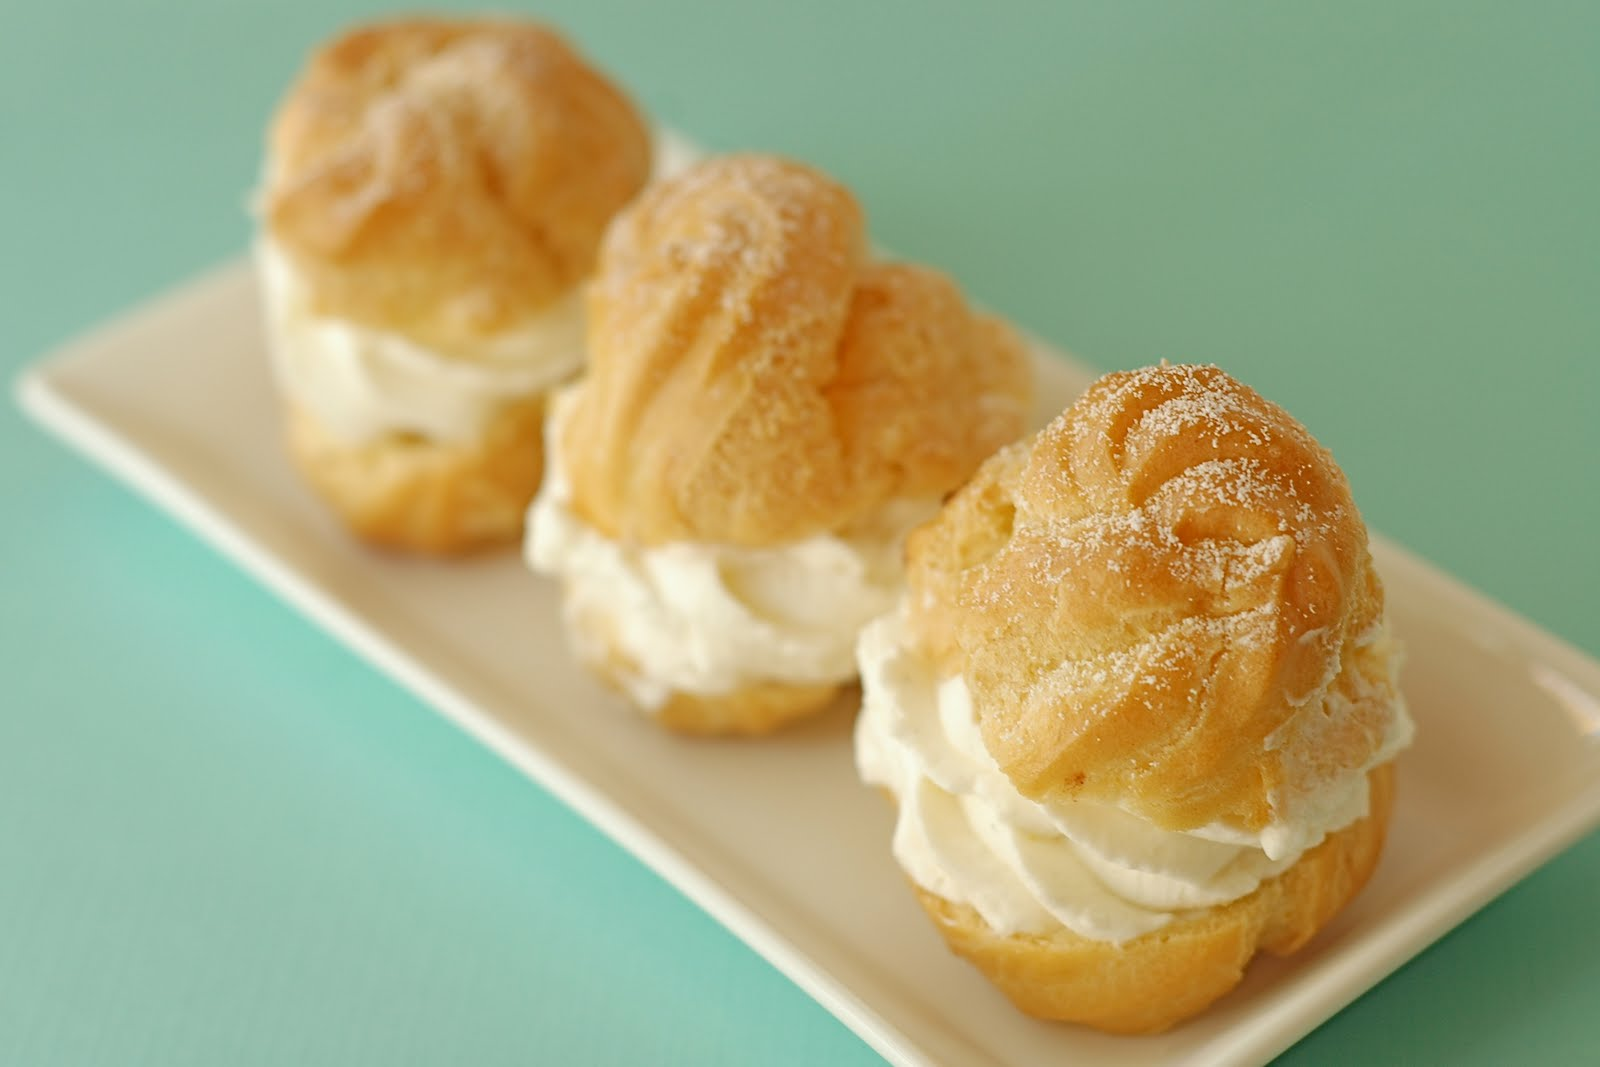 The Unexpected Culinarian: A Little Cream and Puff